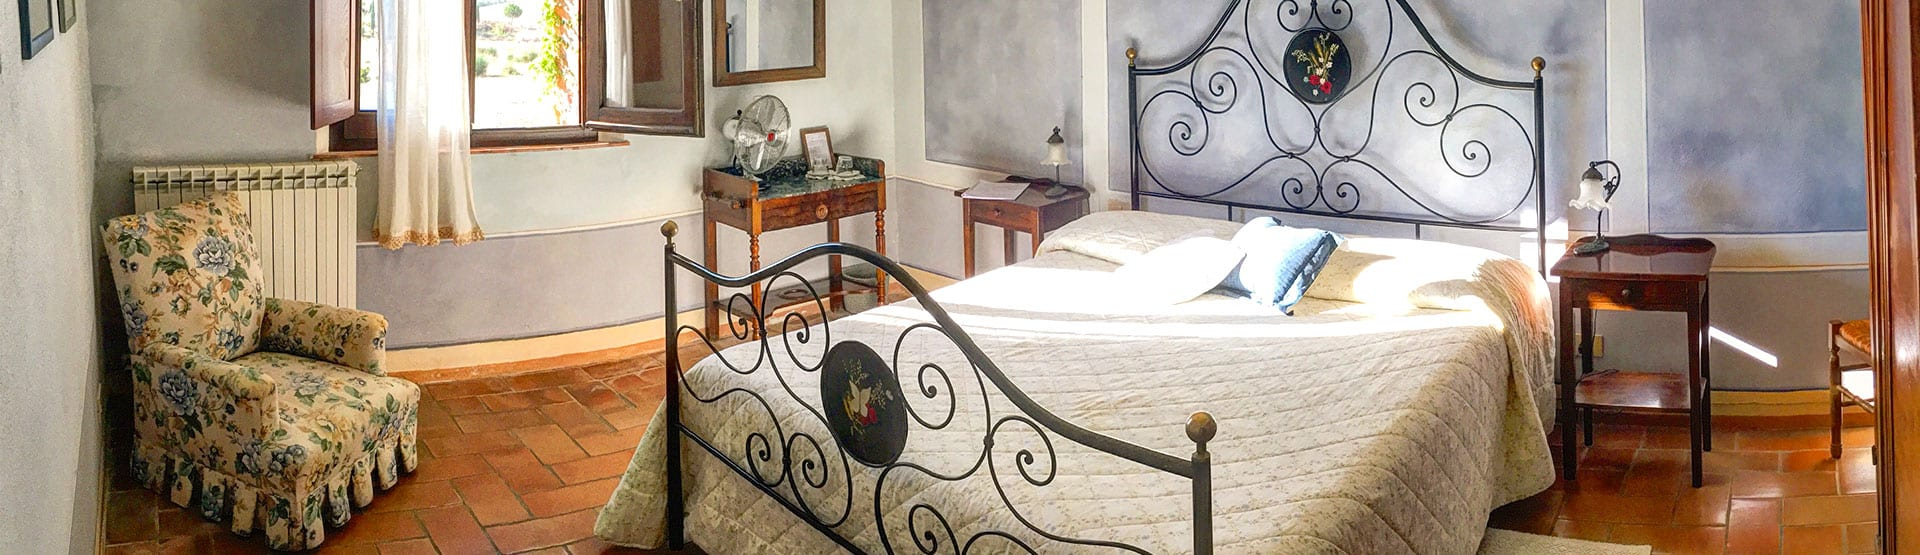 Walking Holiday Accommodation in Tuscany with Collett's - Il Rigo Agriturismo